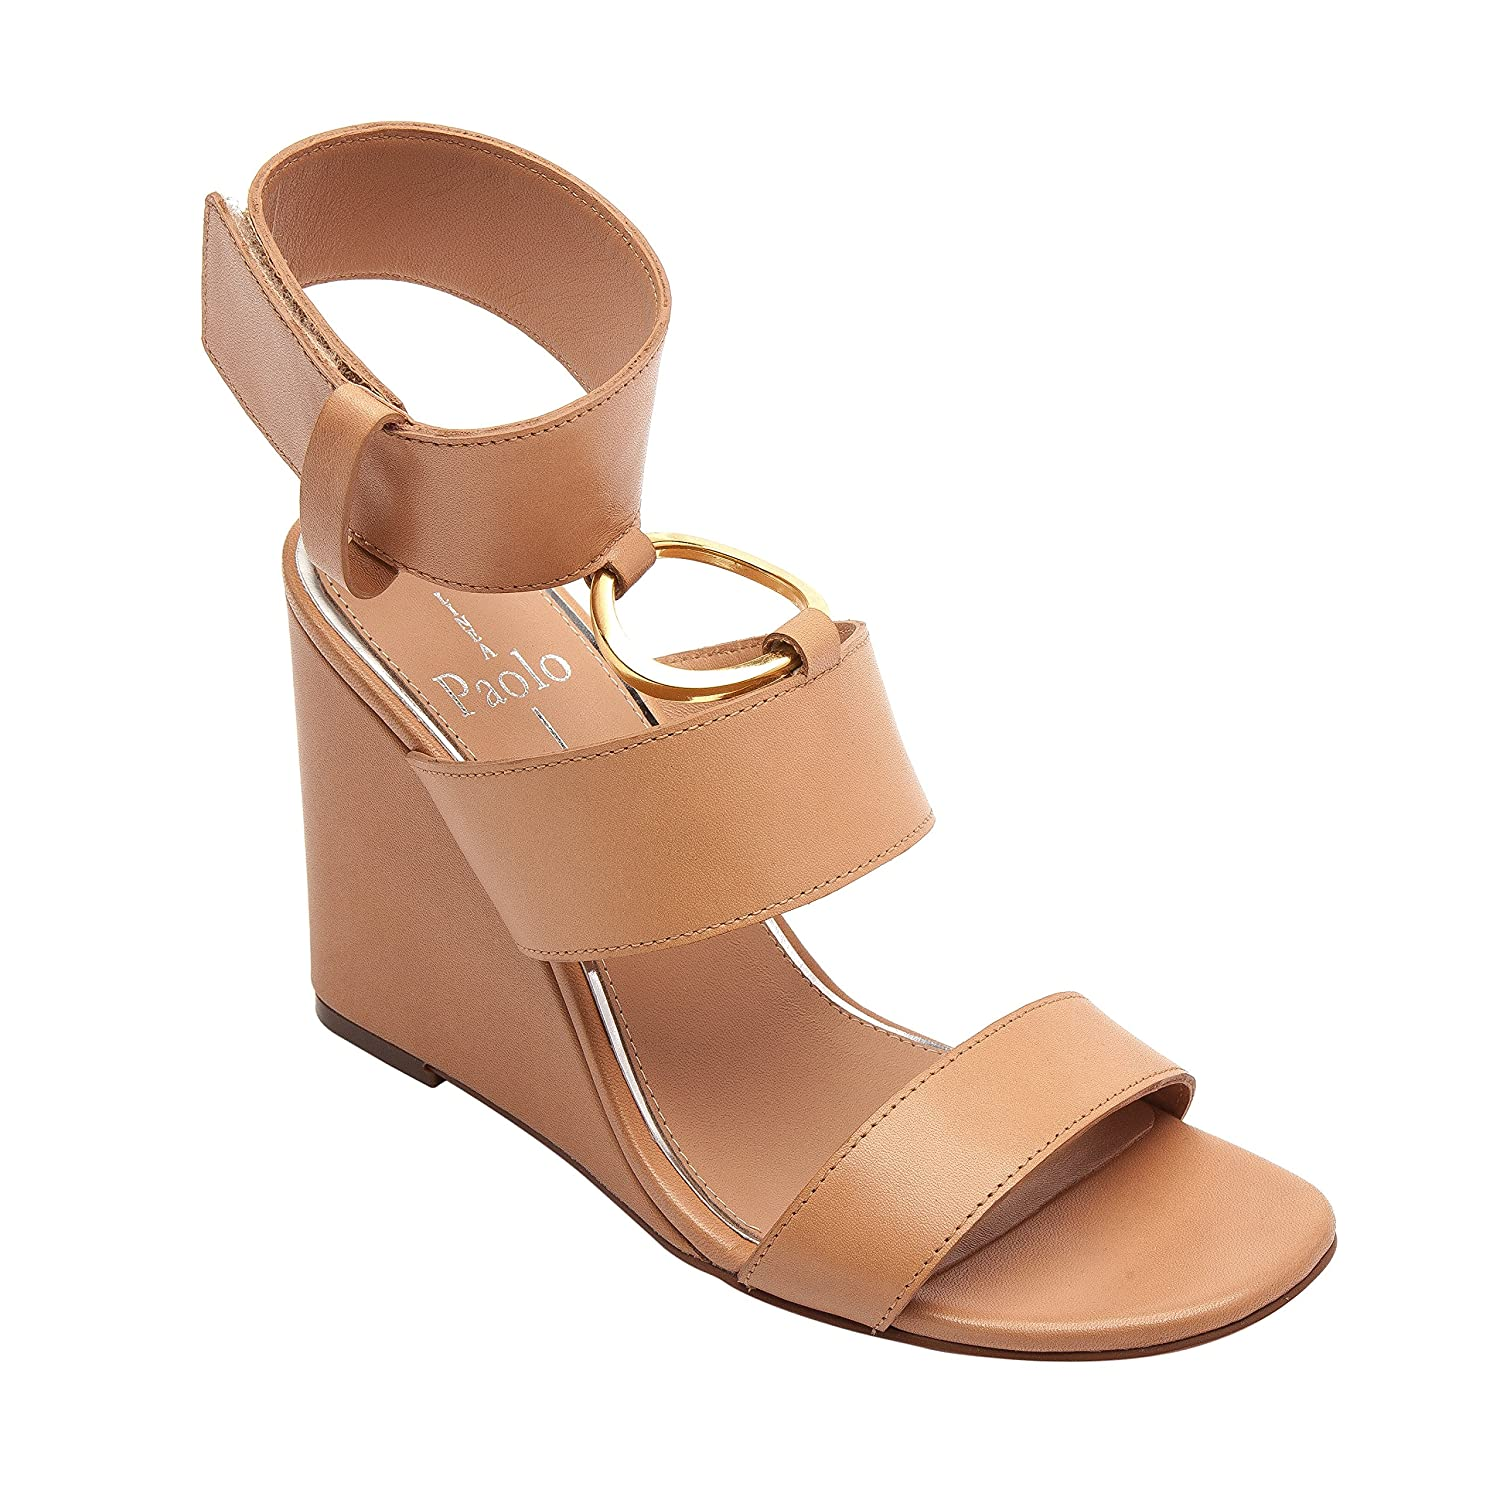 Linea Paolo EVA | Women's Metal Ring Adorned Cuffed Comfortable Wedge Sandal B079584X6V 7.5 M US|Pink Leather